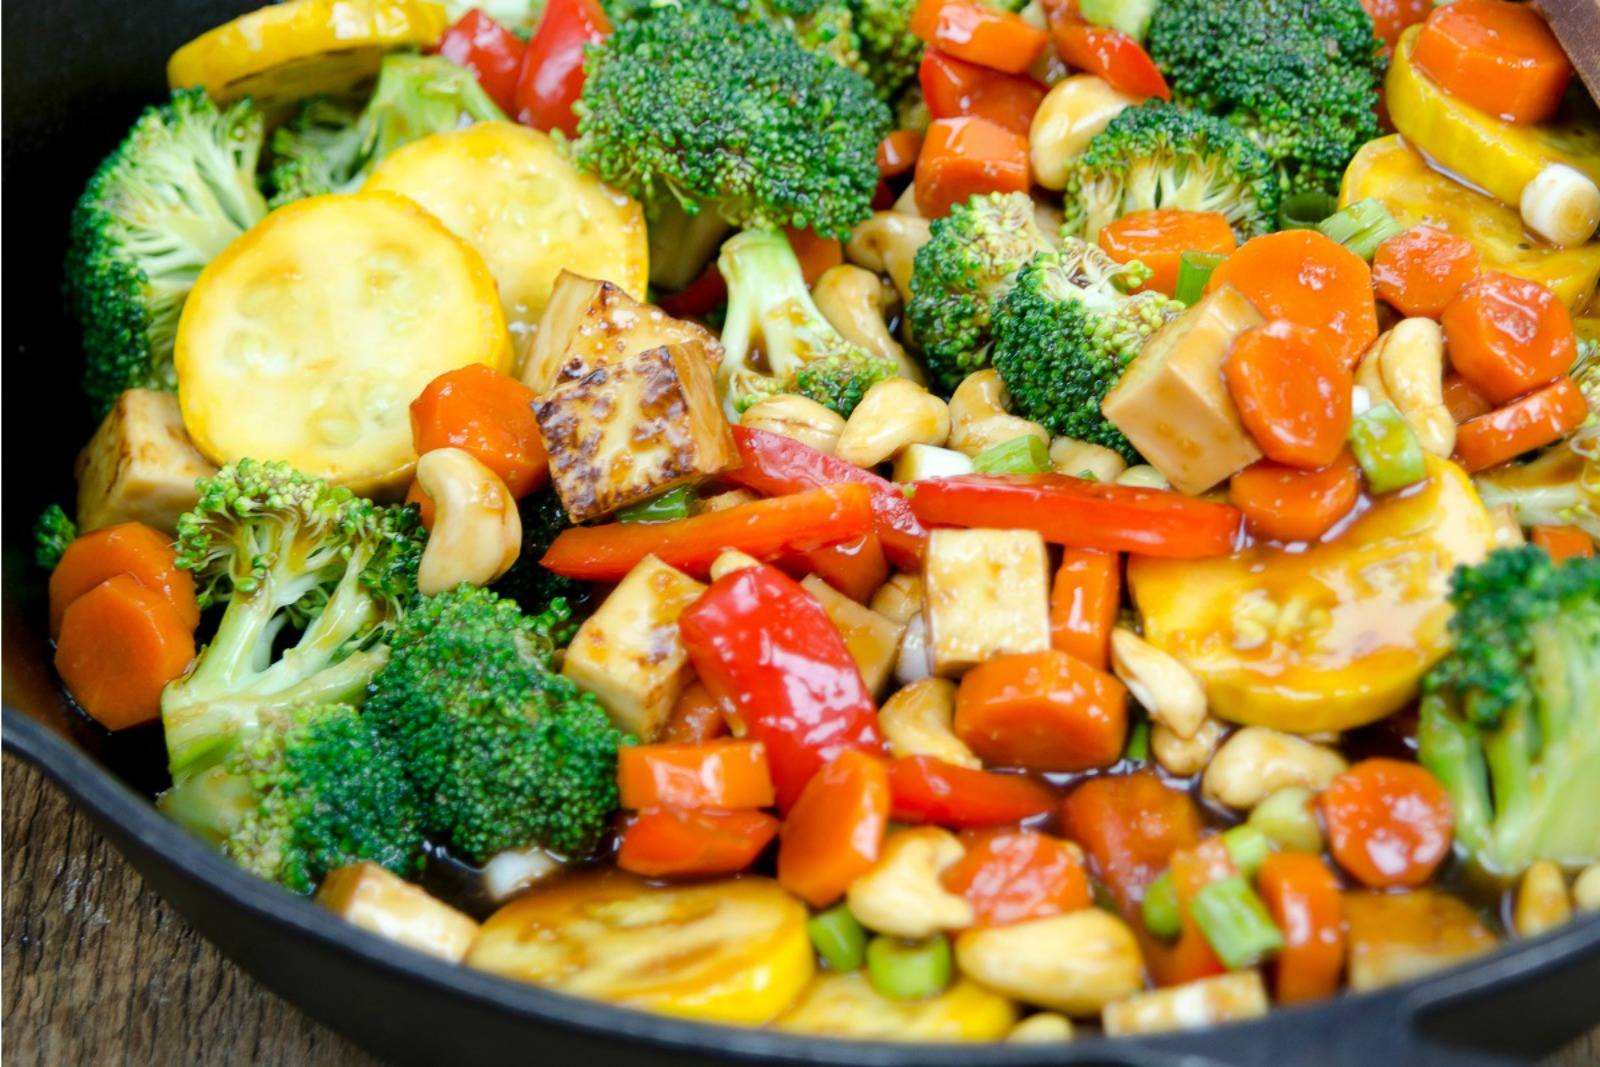 Making Clean Eating Simple From Breakfast to Dinner